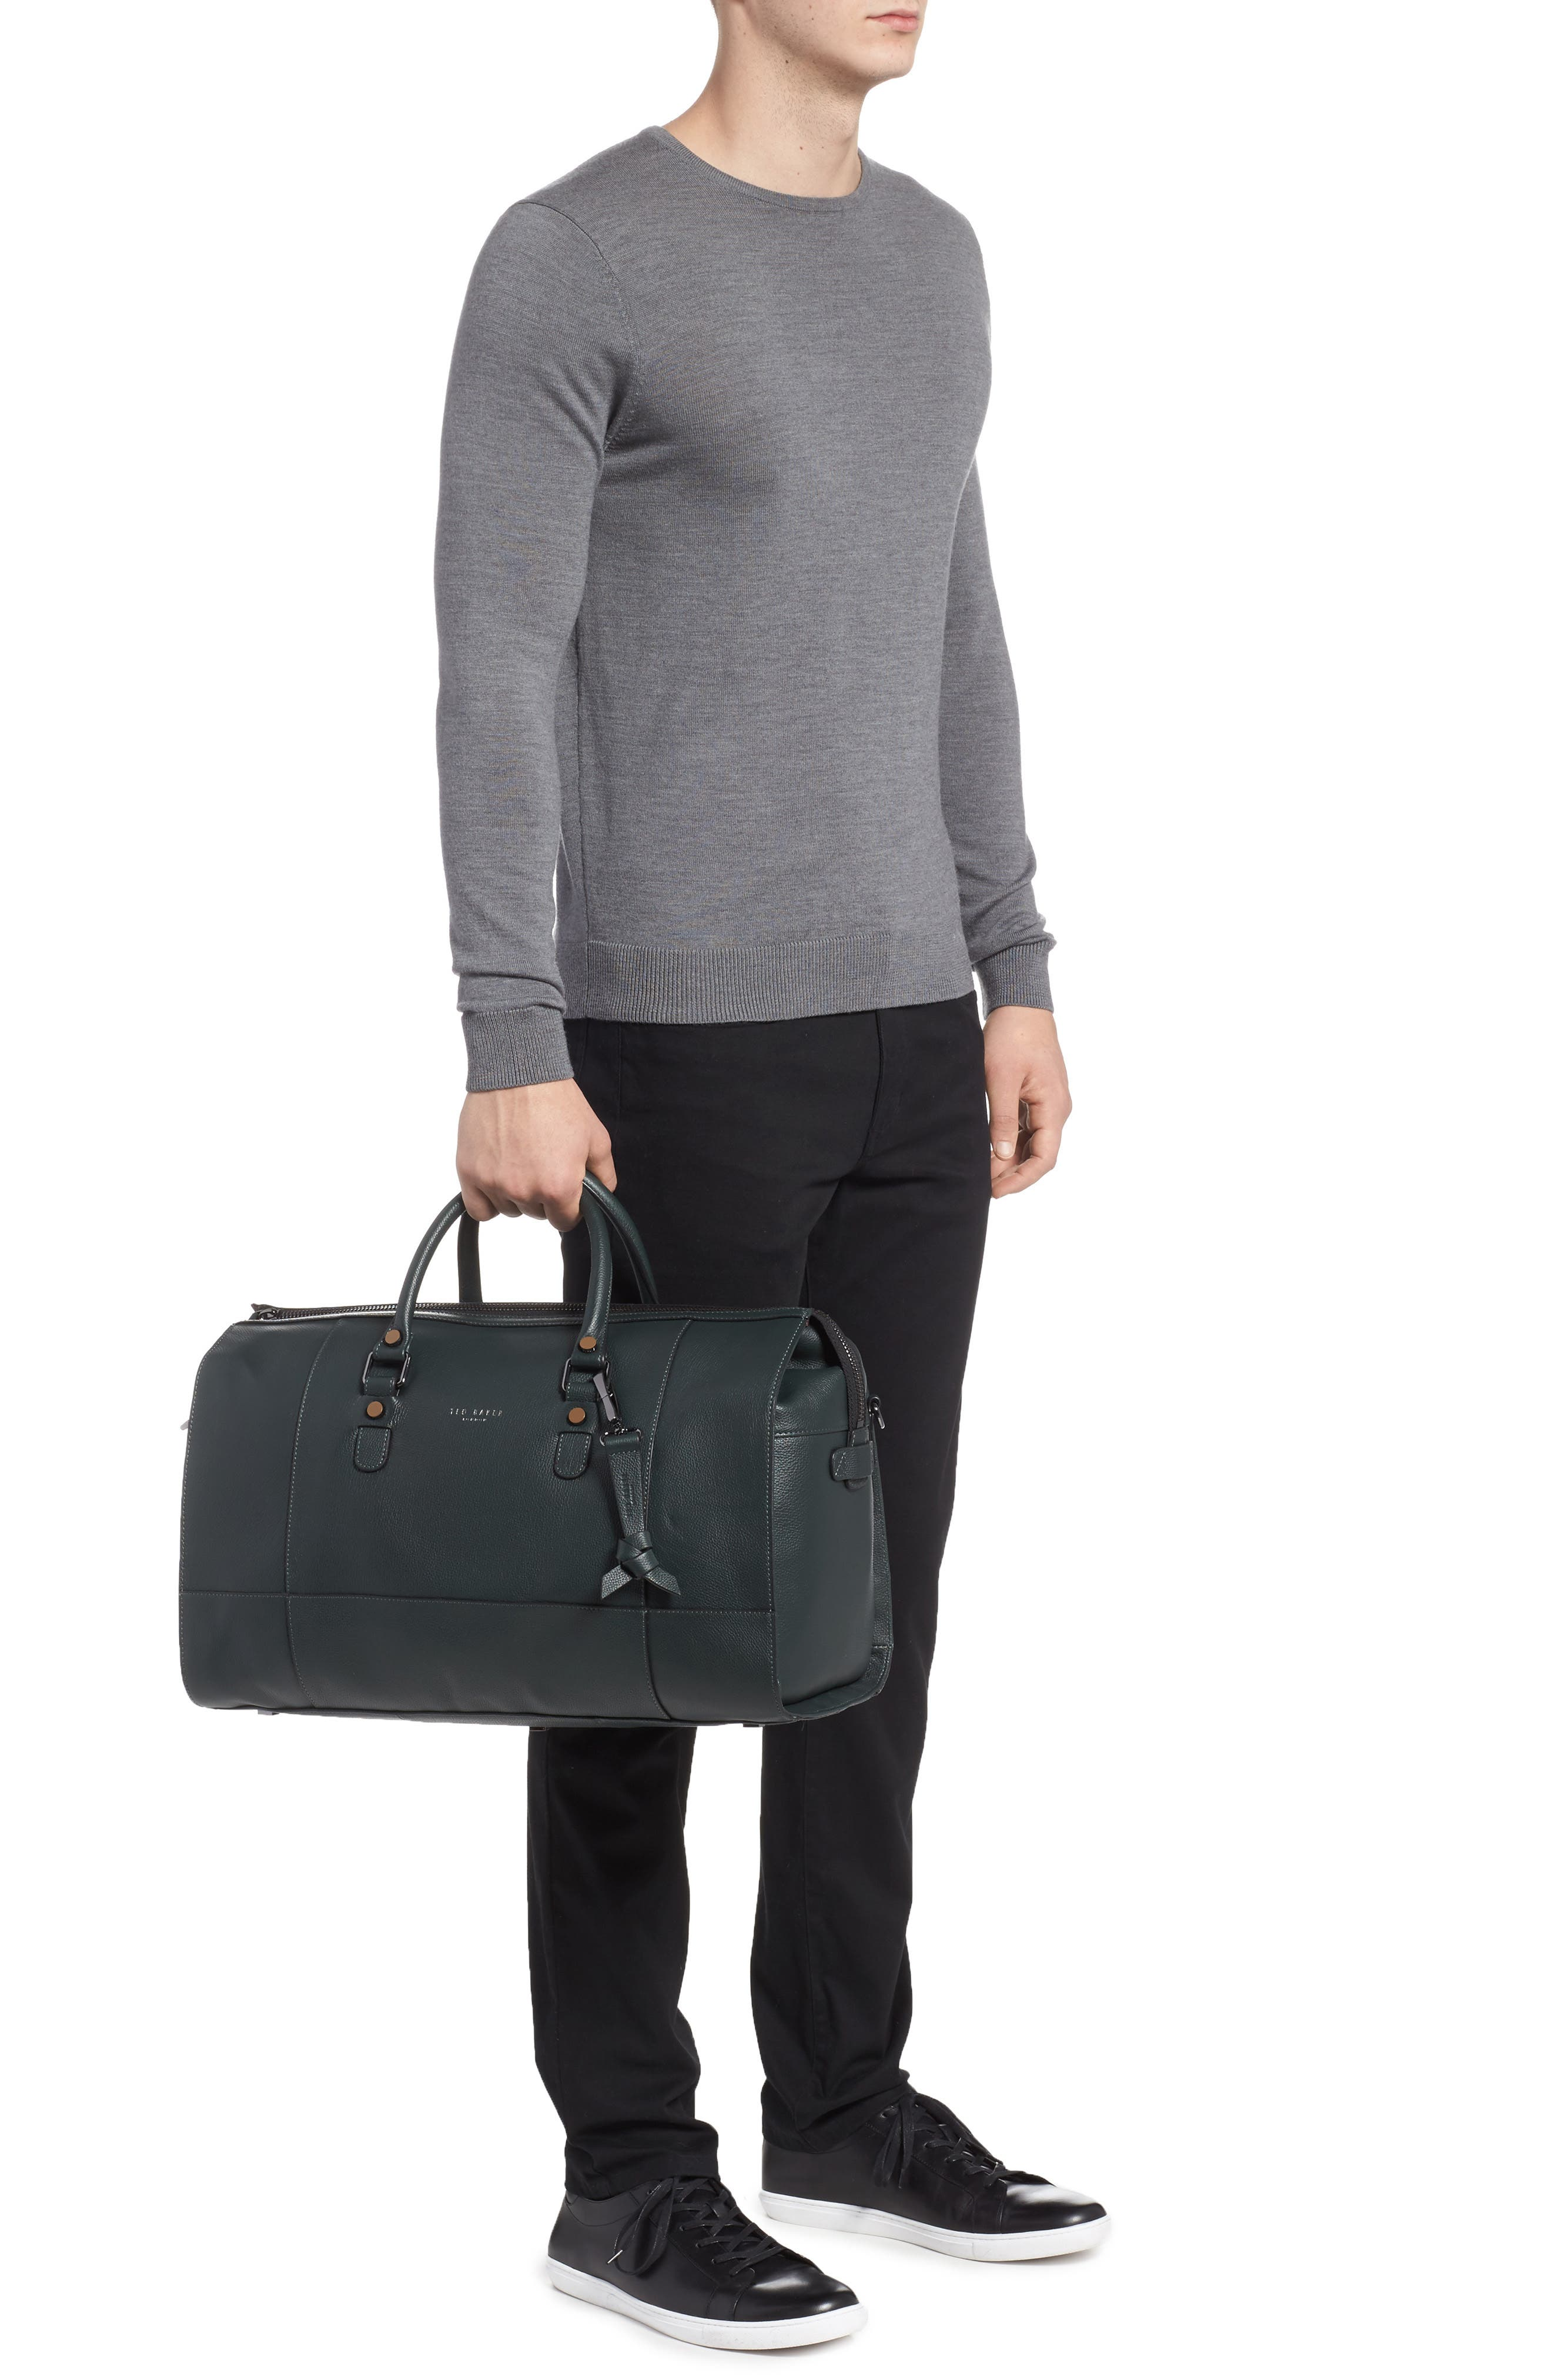 Panthea Leather Duffel Bag,                             Alternate thumbnail 2, color,                             301